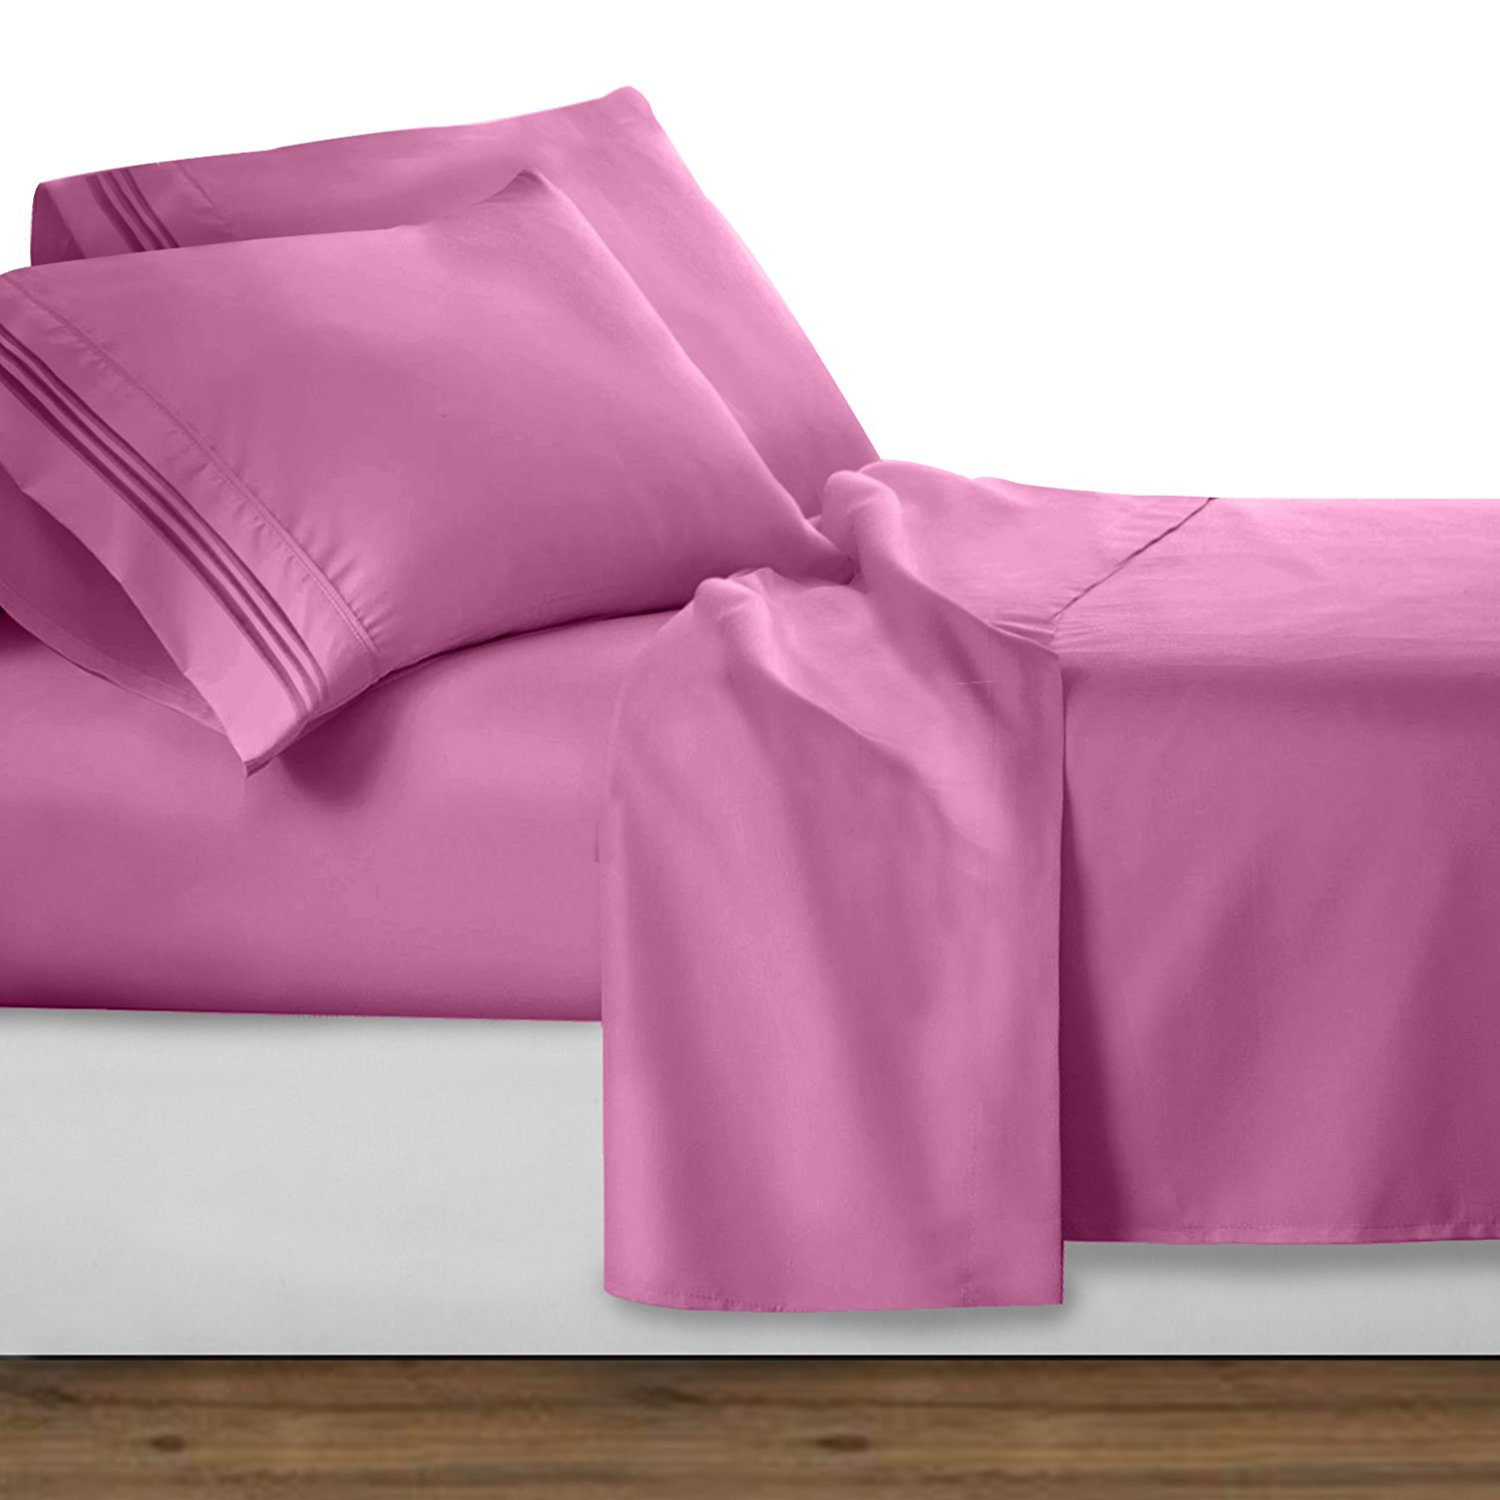 premier 1800 collection 4pc bed sheet set queen size strawberry pink queen size 4pc set. Black Bedroom Furniture Sets. Home Design Ideas